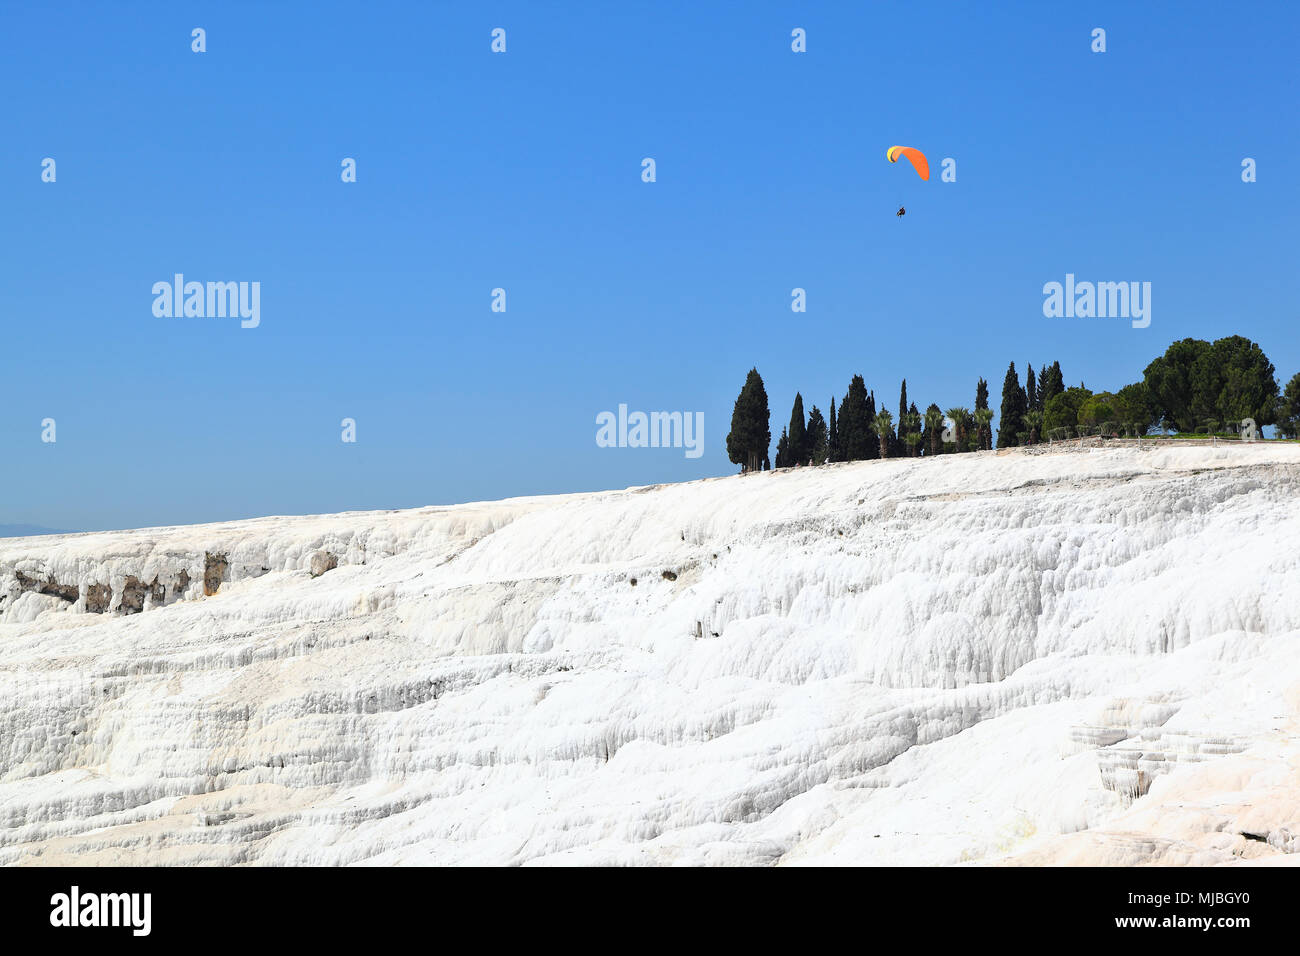 Pamukkale: Paraglider flying over the caclium deposits from the natural thermal springs. - Stock Image